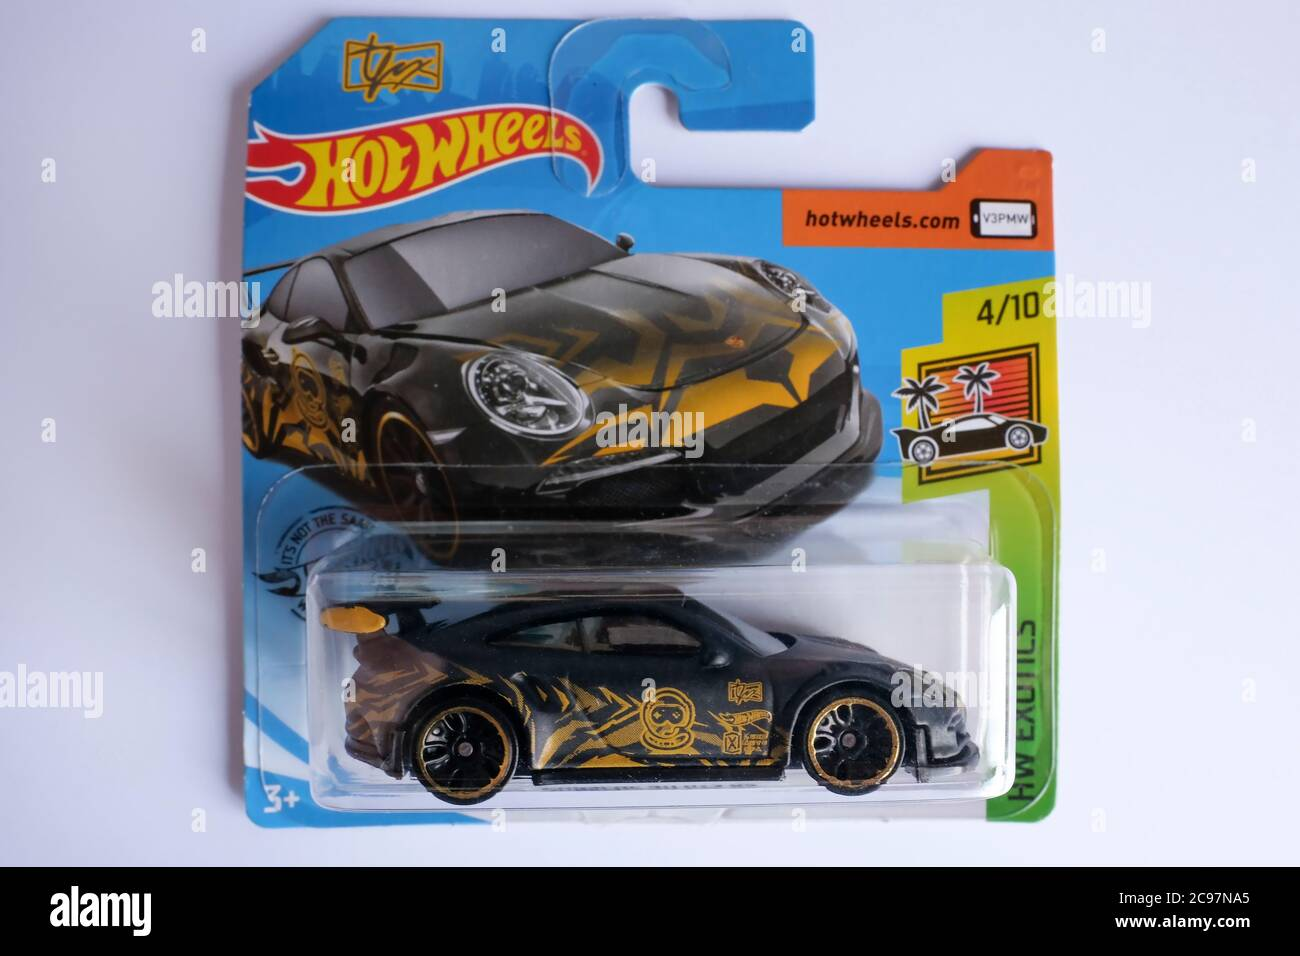 Istanbul Turkey July 29 2020 A Hot Wheels Black Colored Porsche 911 Gt3 Rs Die Cast Toy Car On Is White Background Stock Photo Alamy